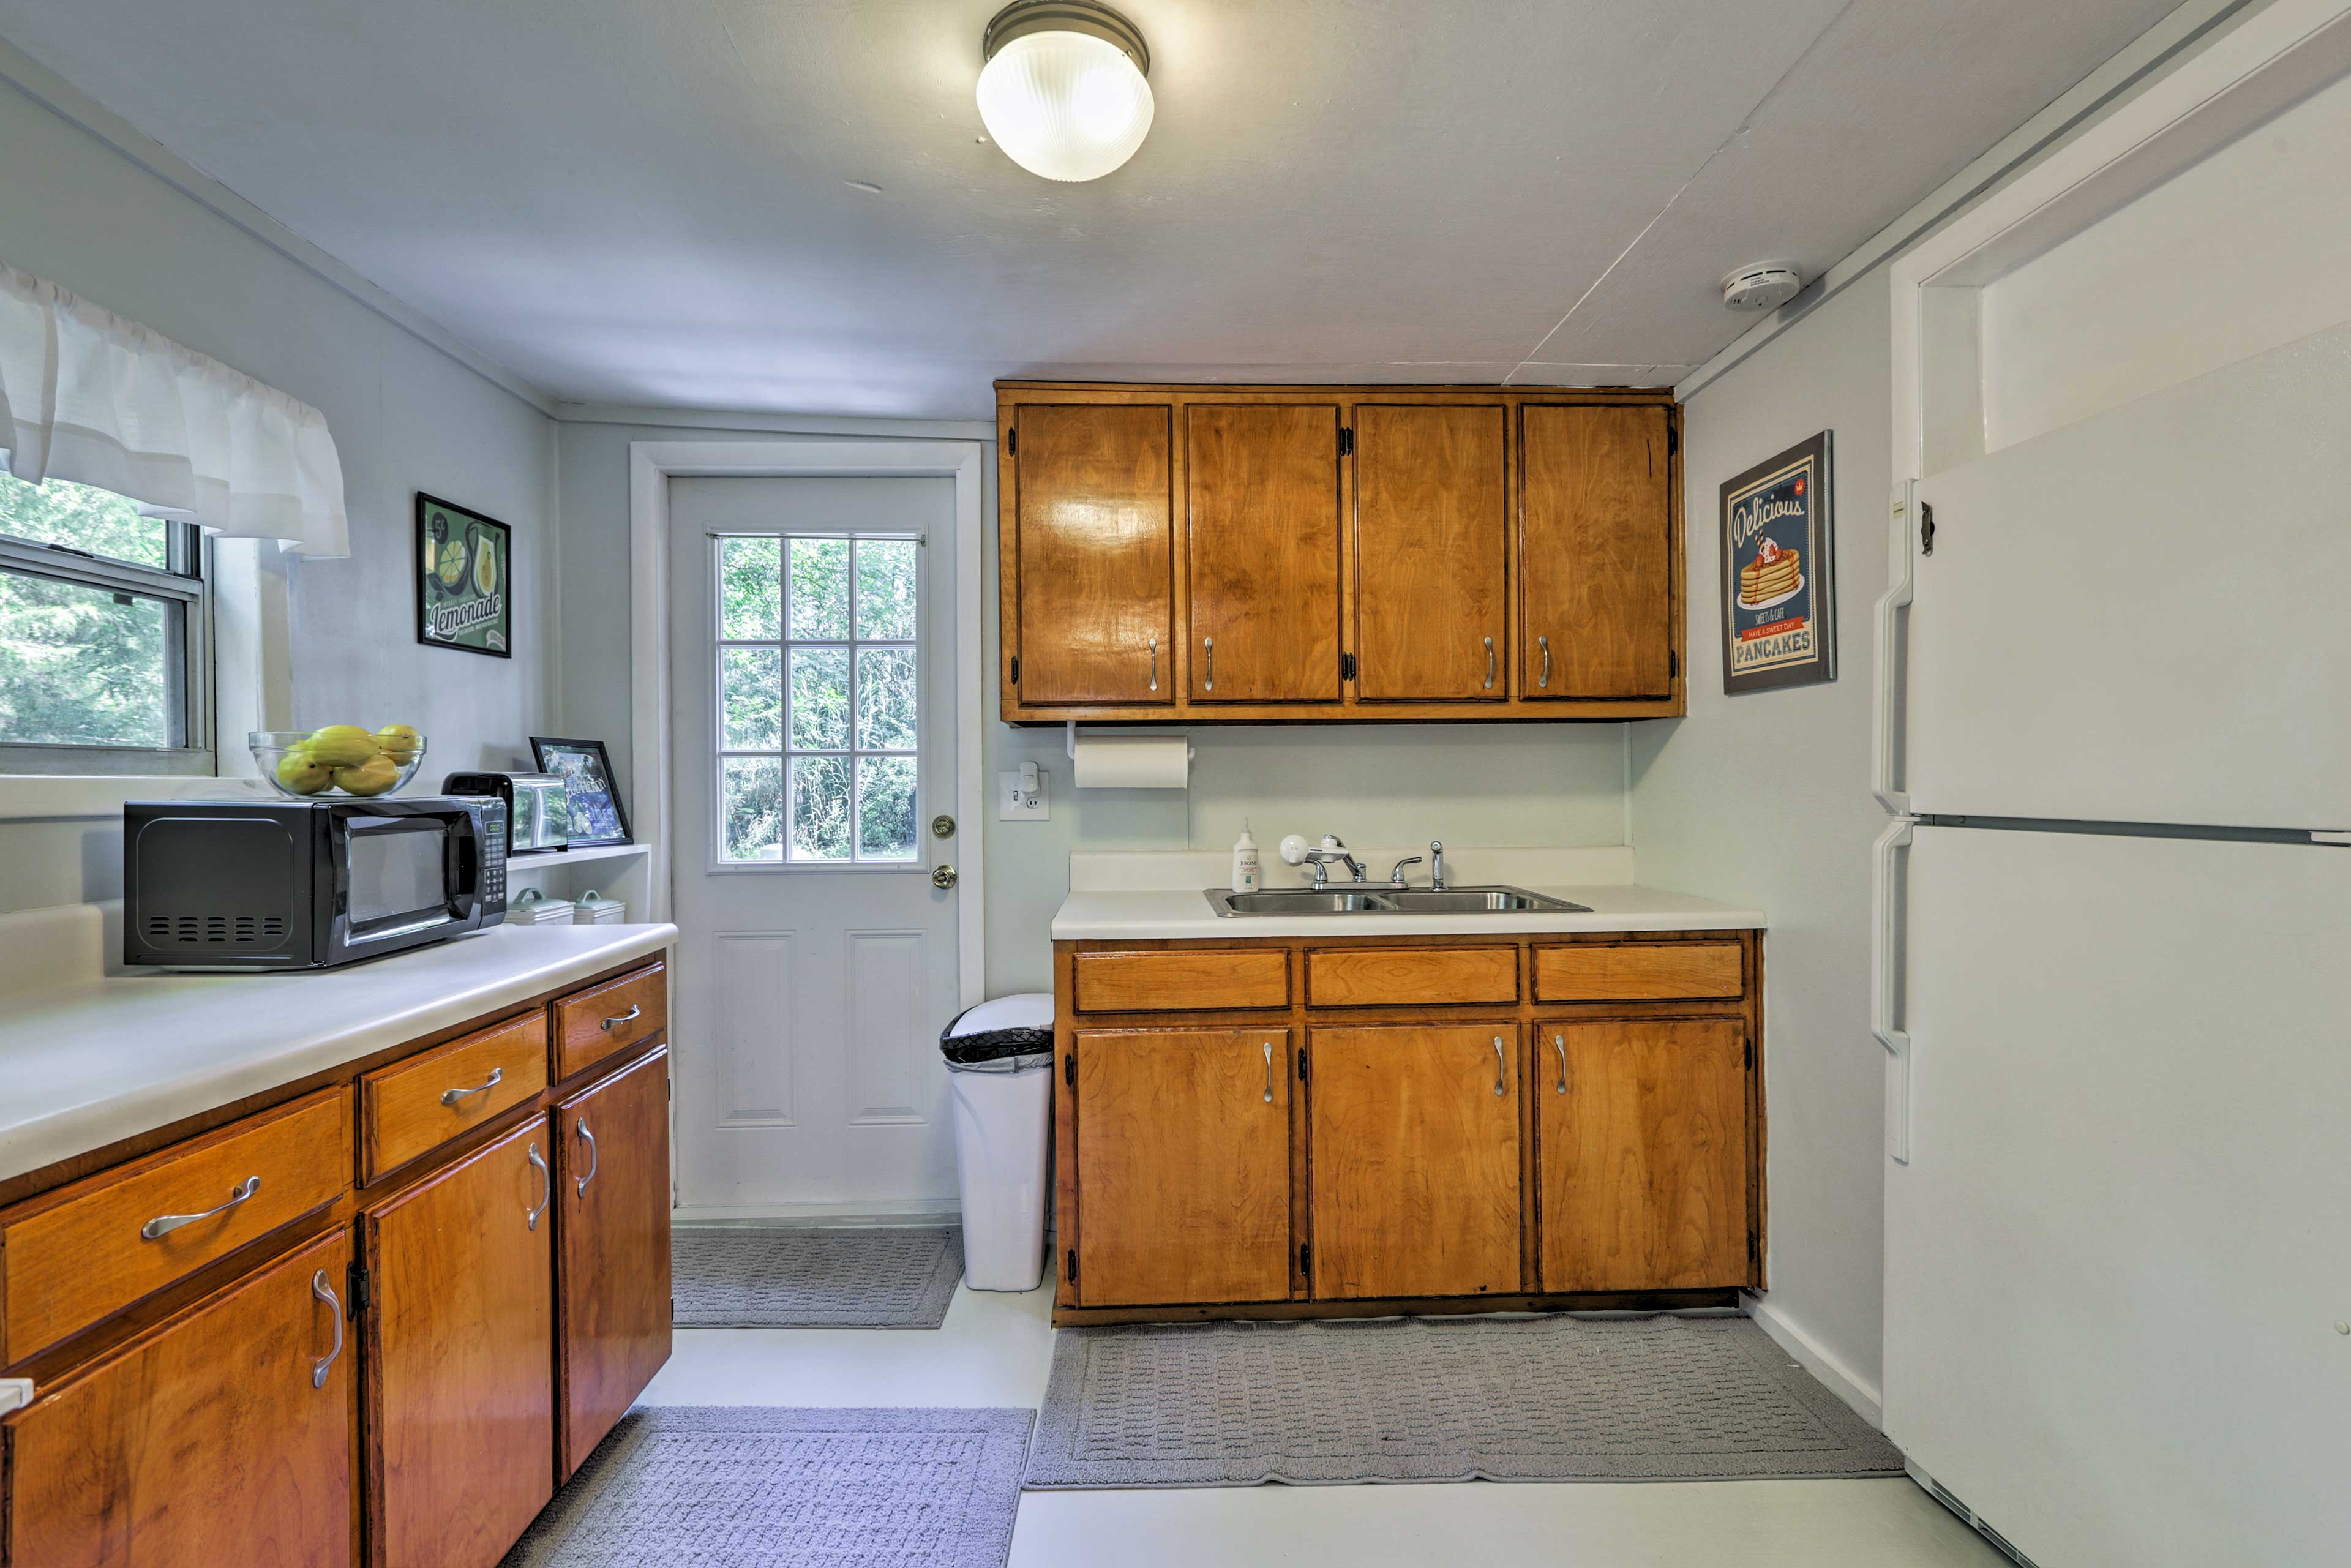 This kitchen comes fully equipped!